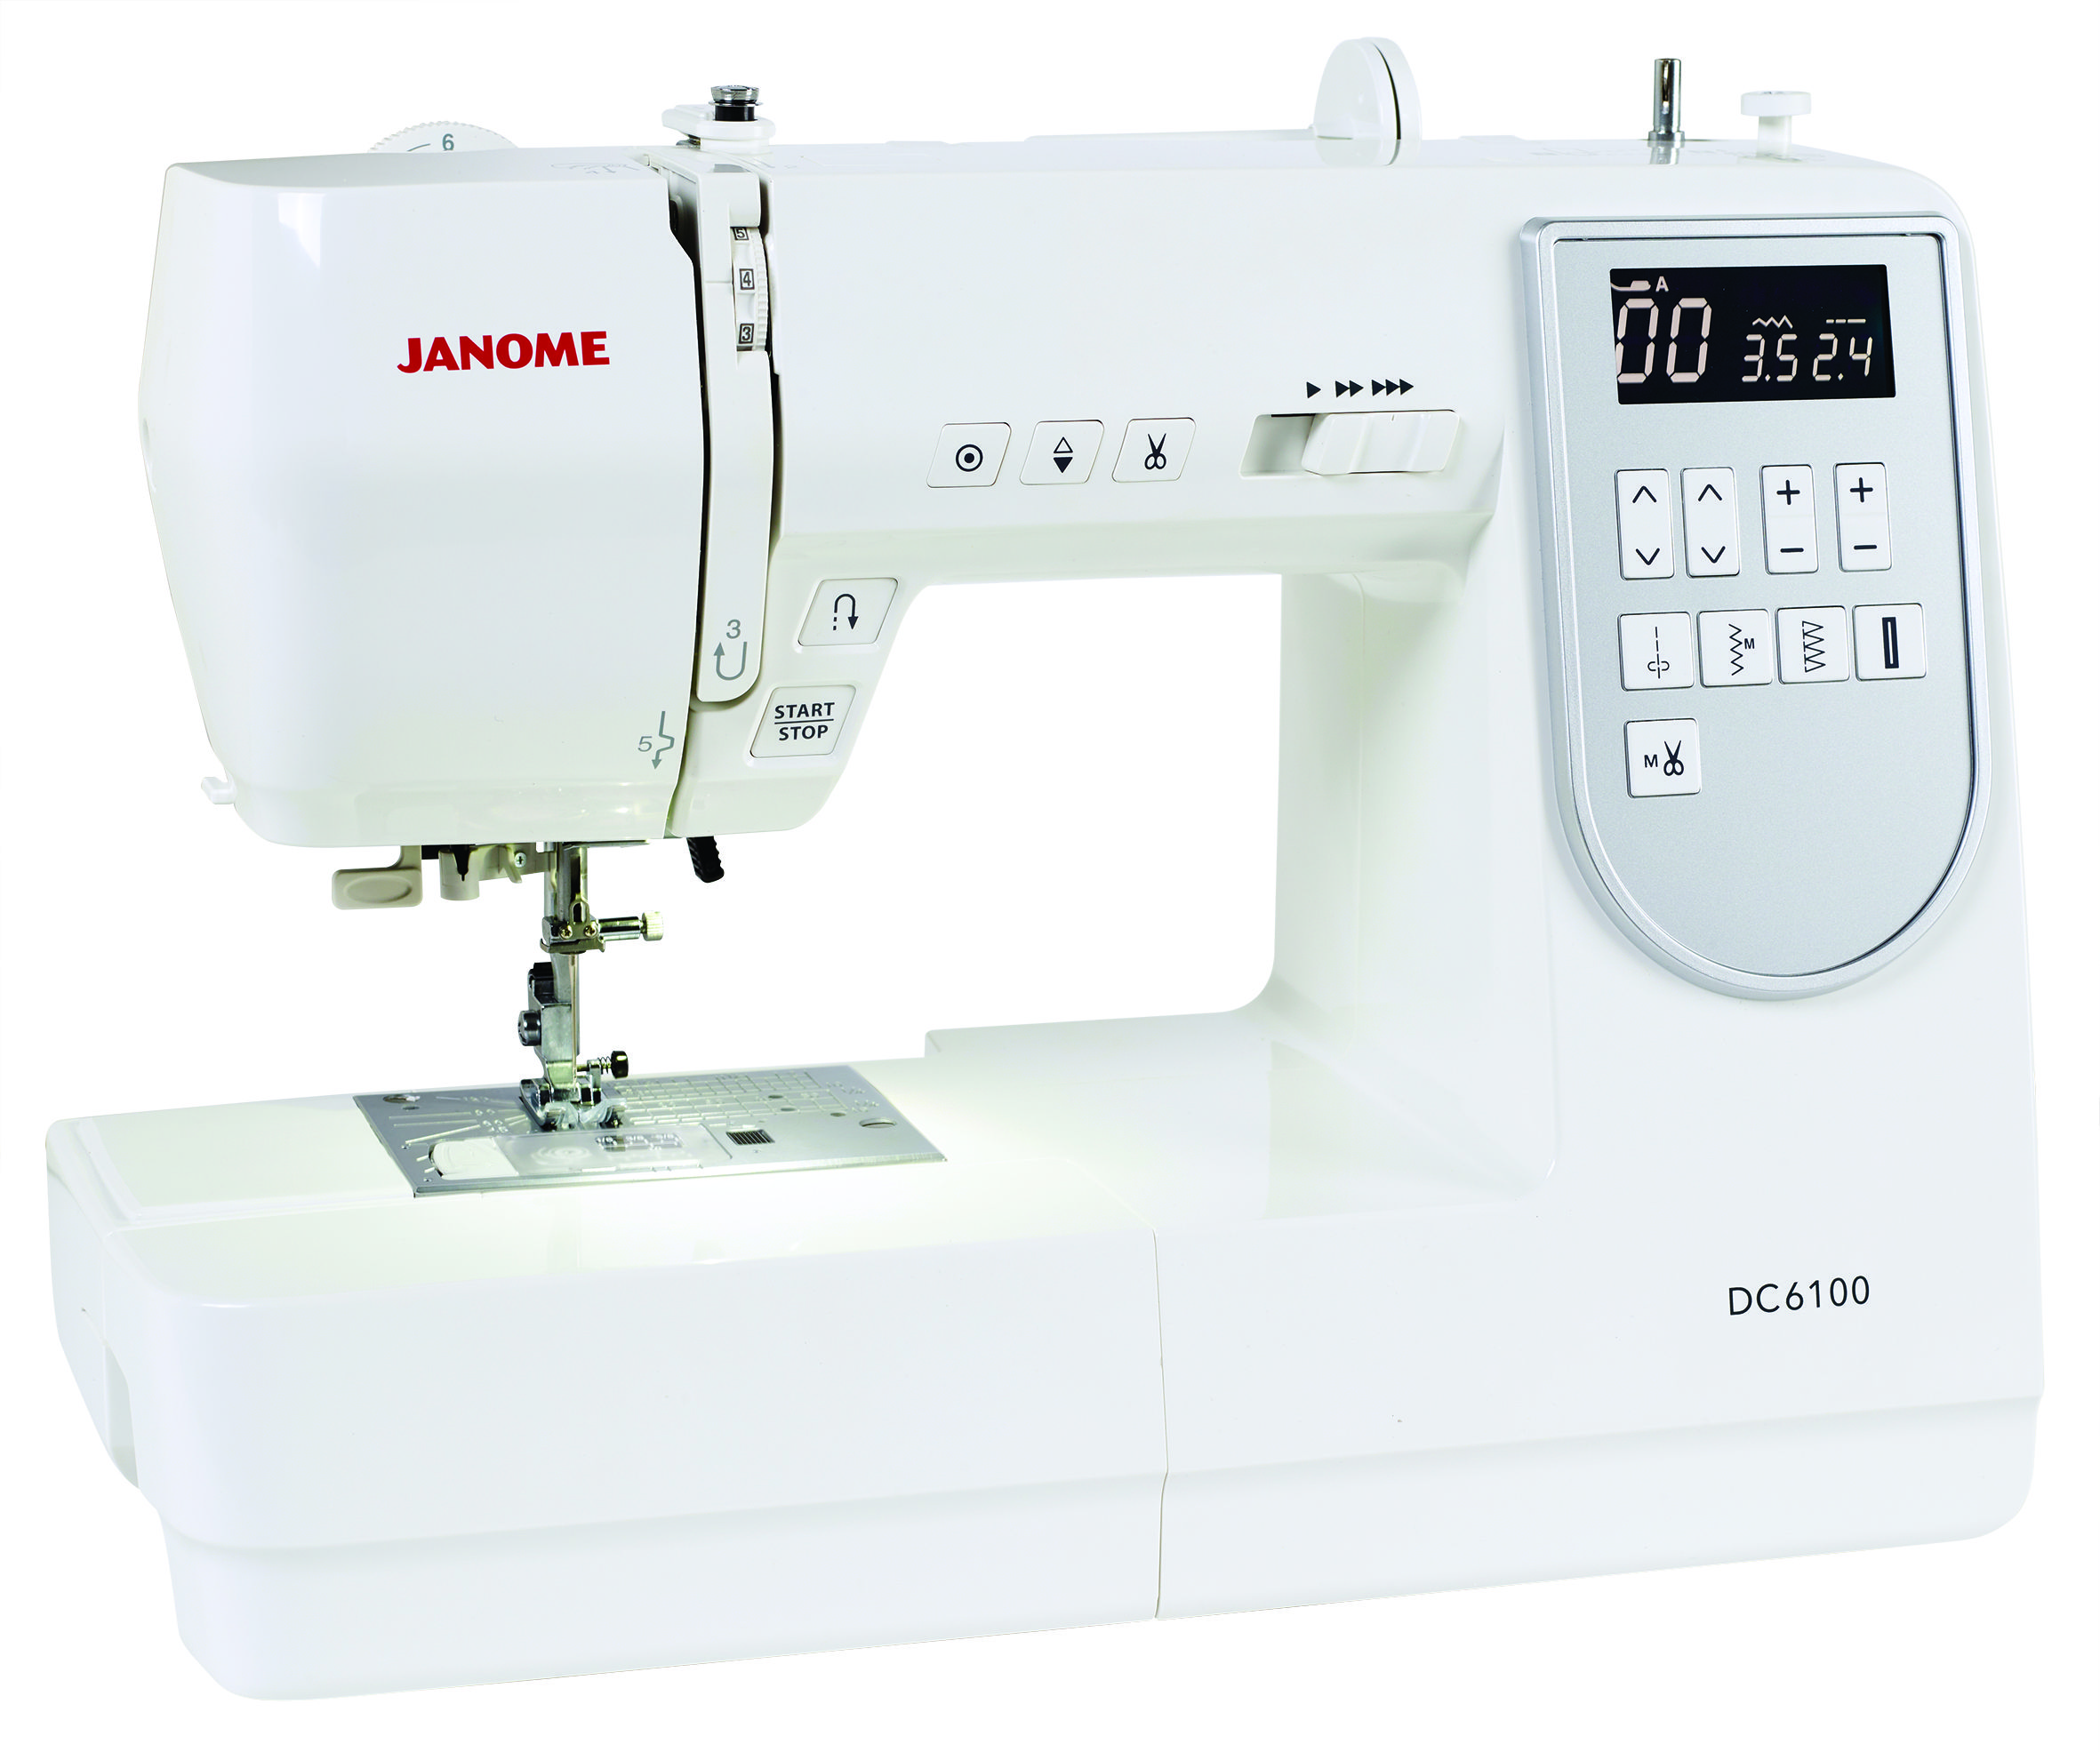 The Janome DC6100 has all the great features to make